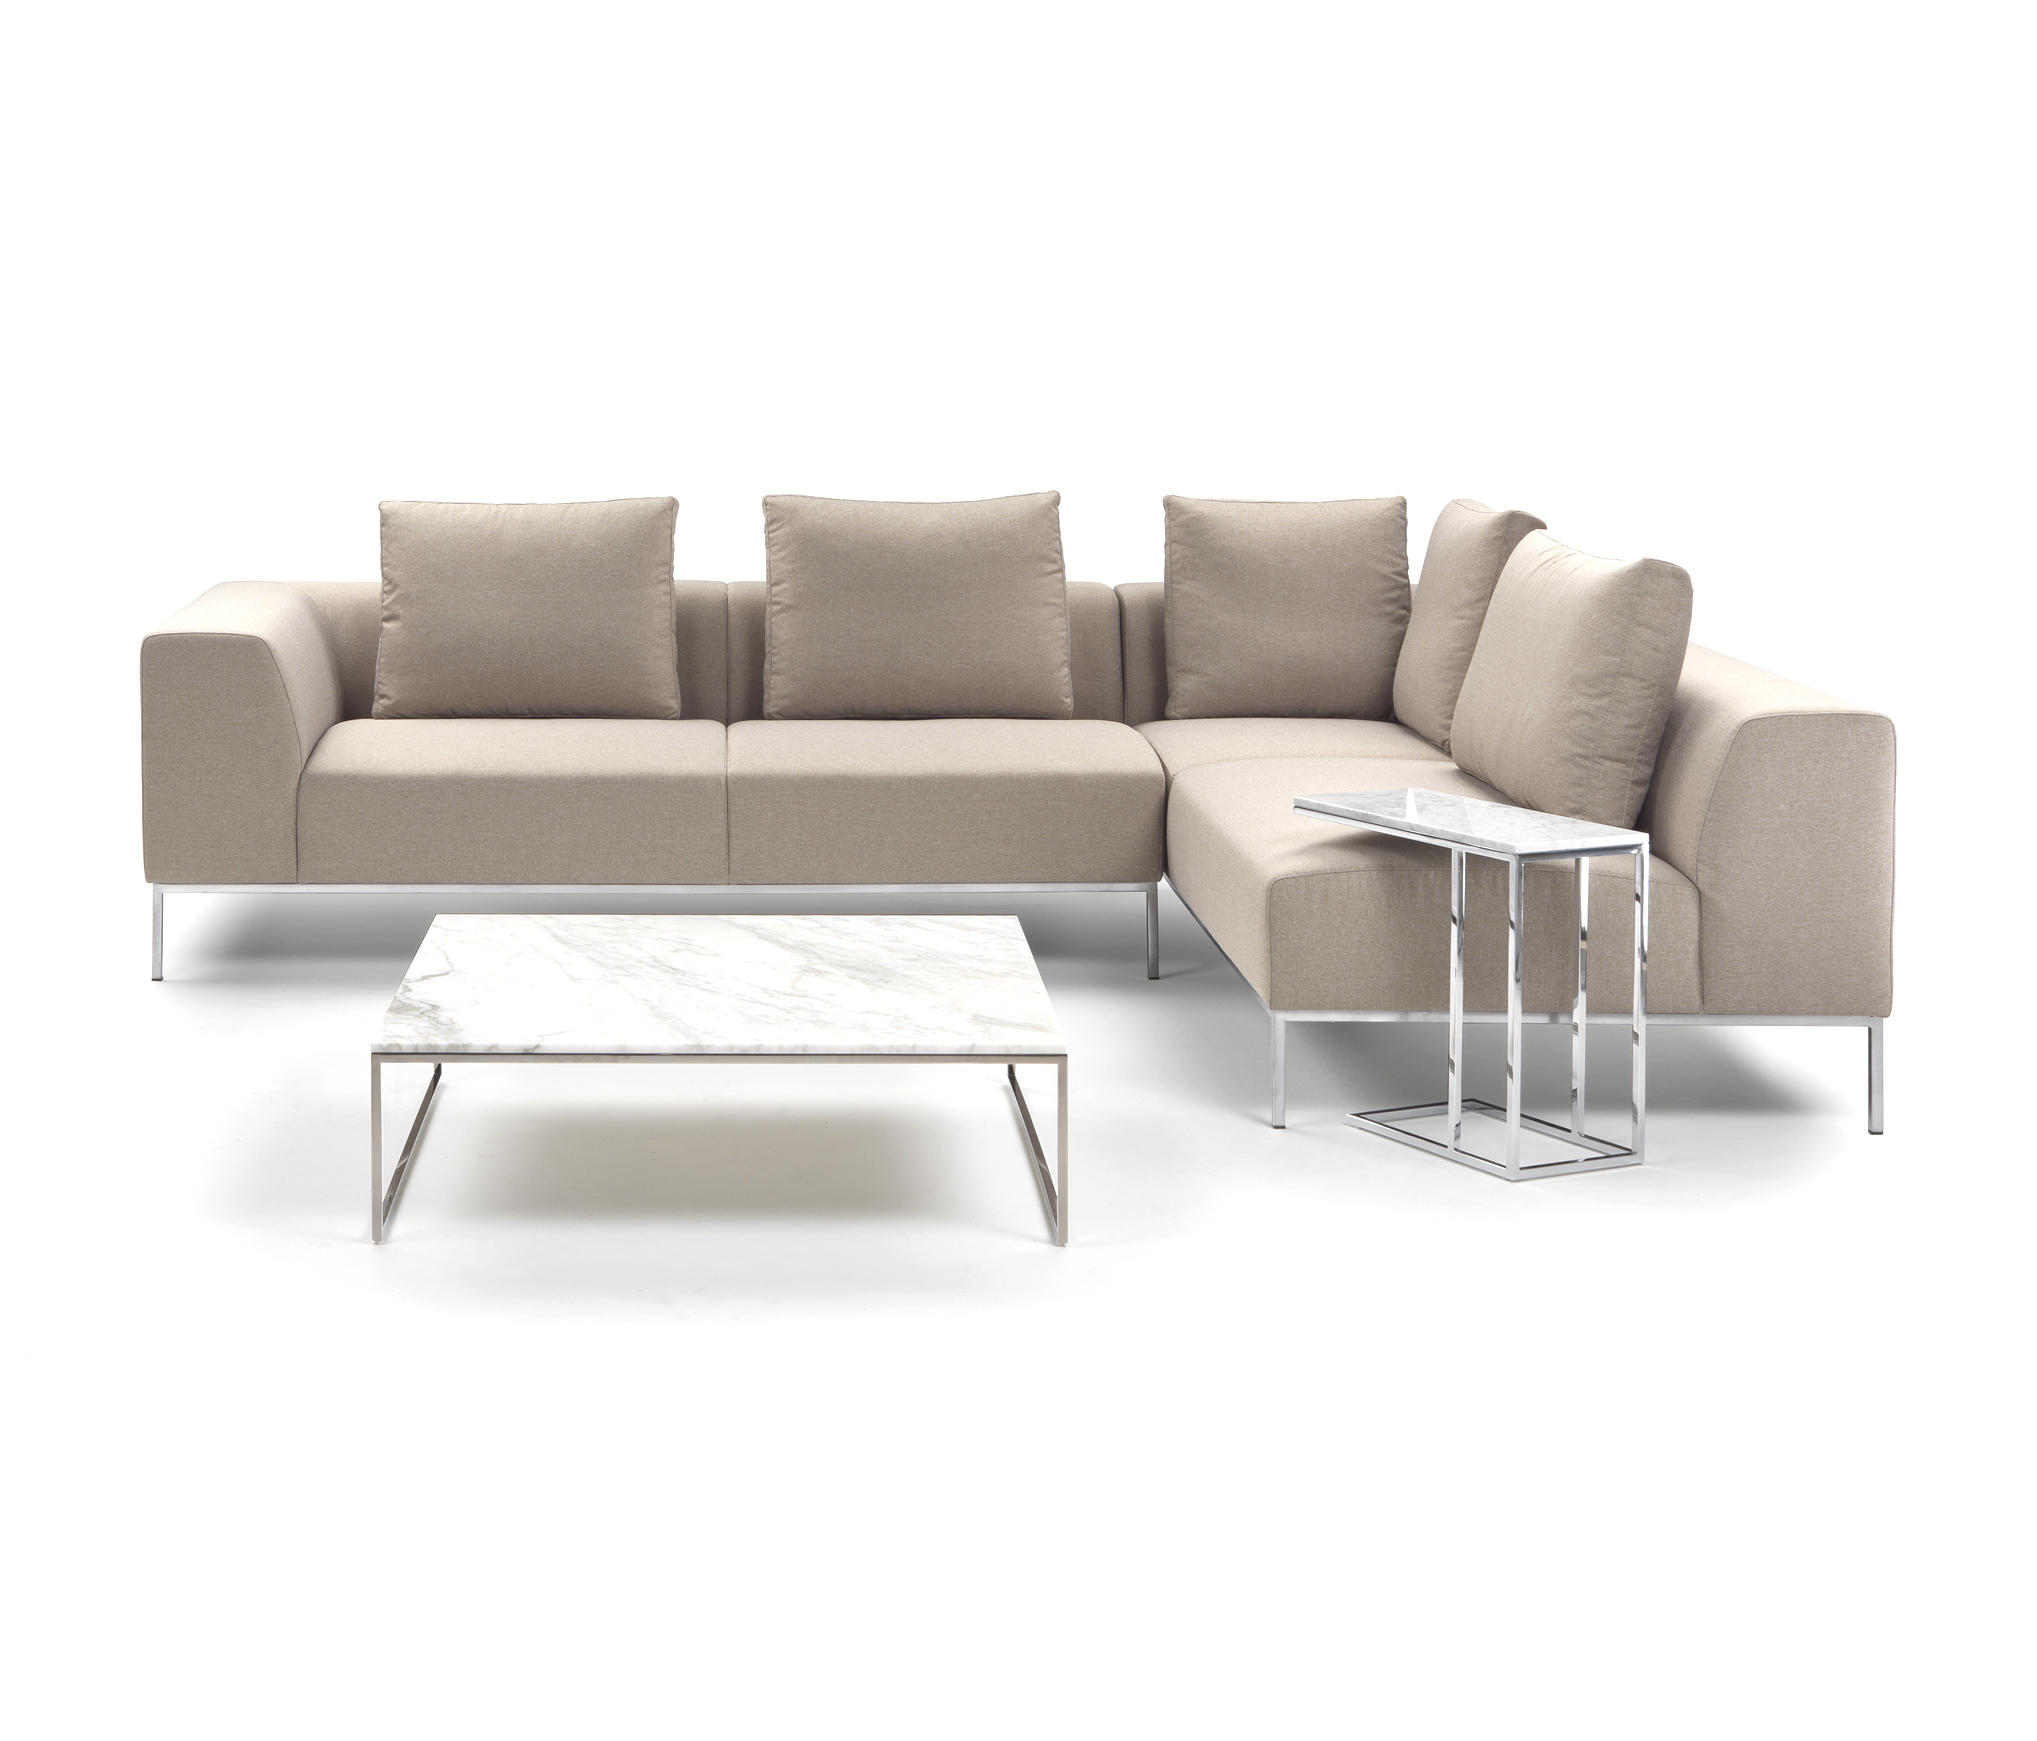 Sofa Lounge Nyc New York Sofas New York Suite Sofa Lounge Sofas From Saba